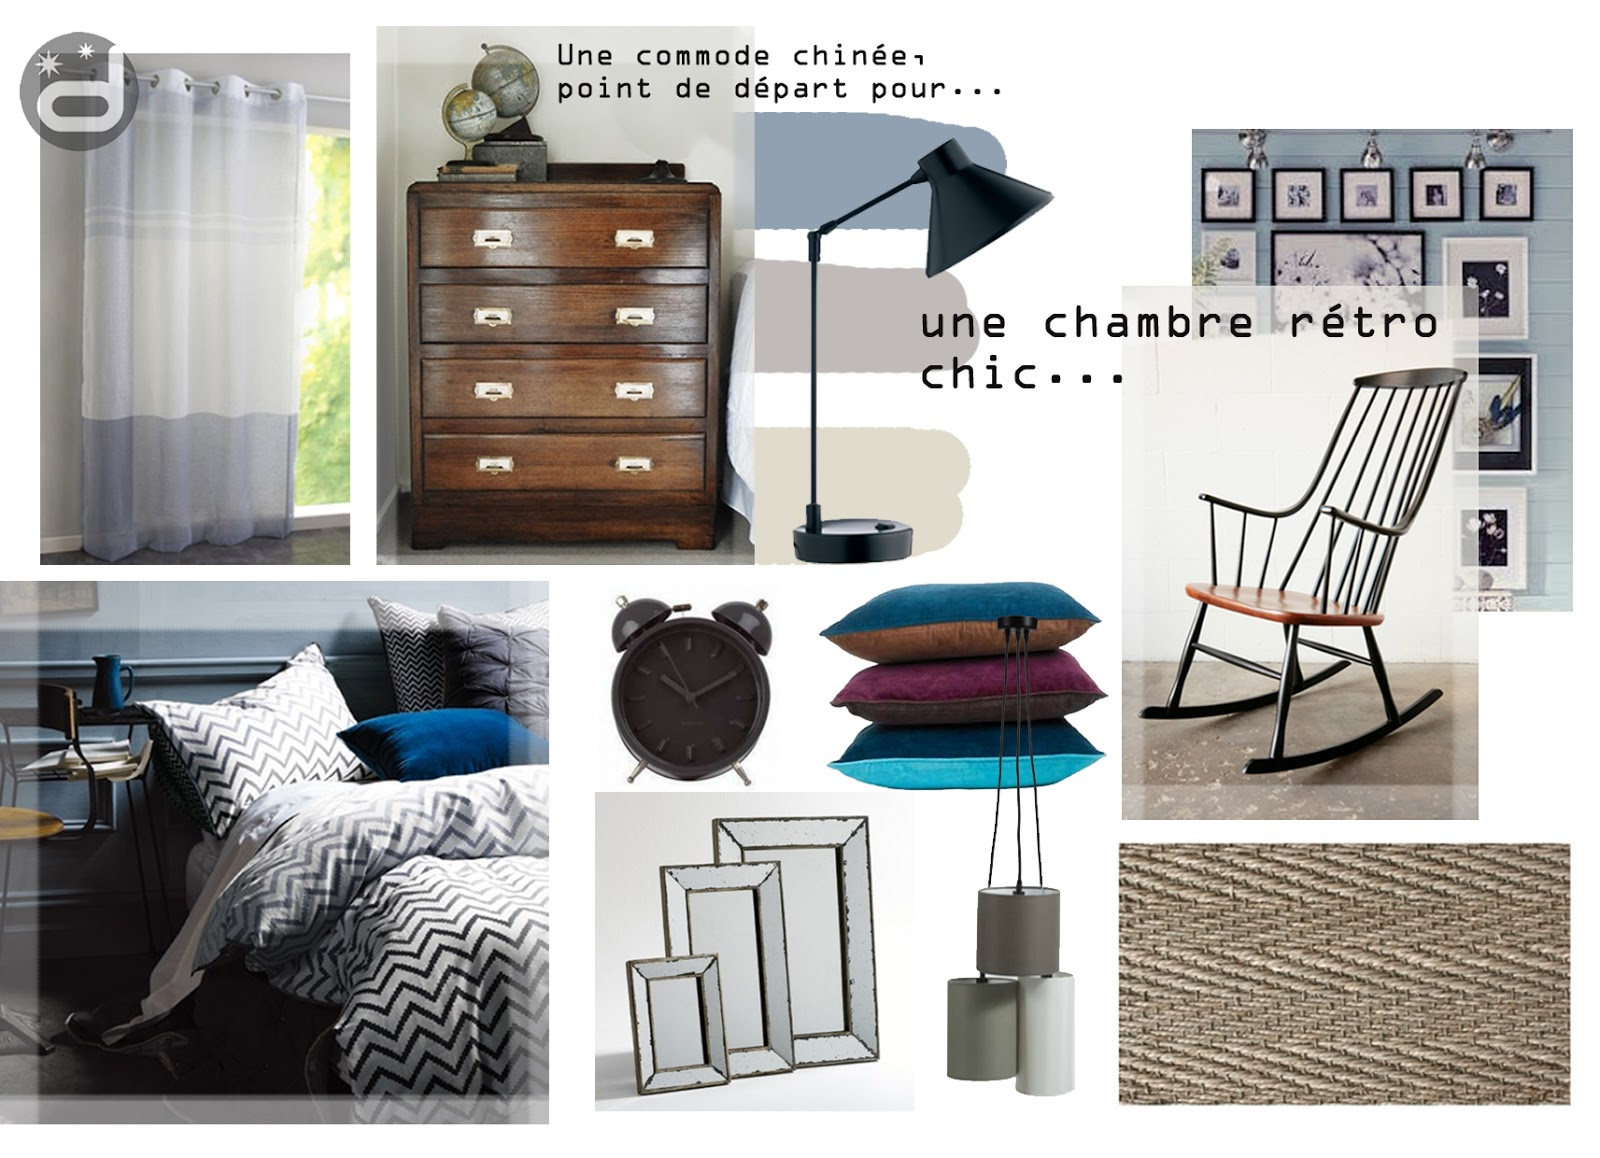 divin 39 id le blog d co planche d 39 ambiance pour une chambre r tro mood board for a retro bedroom. Black Bedroom Furniture Sets. Home Design Ideas